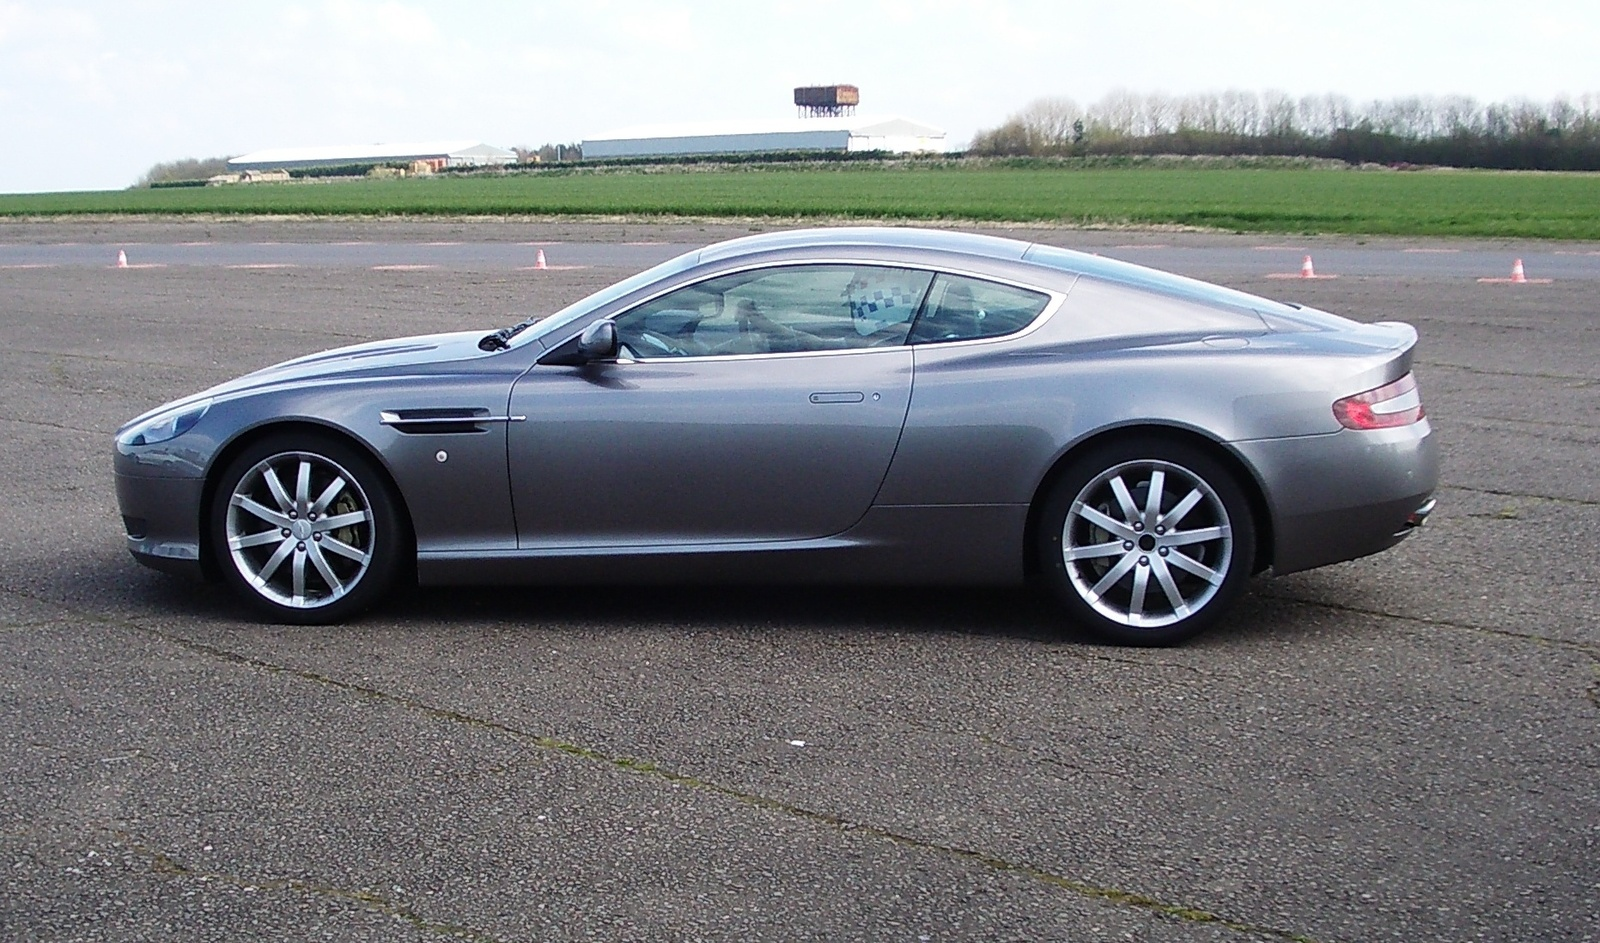 Cars aston martin db9 coupe 2005 #3